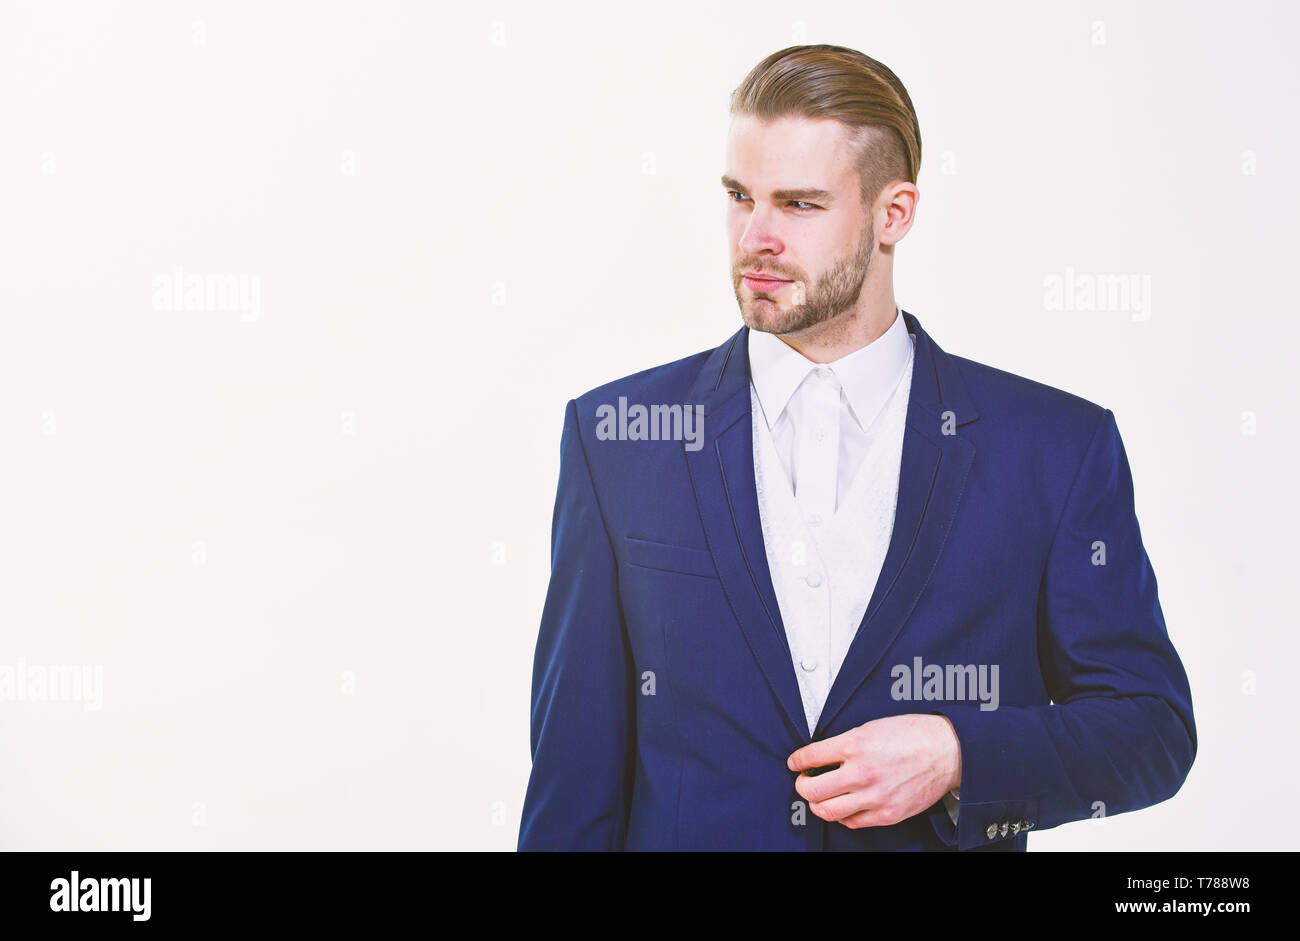 Individual entrepreneur business. Man well groomed business formal suit white background. Business man serious entrepreneur. Handsome office worker. Make business decision and take responsibilities. - Stock Image